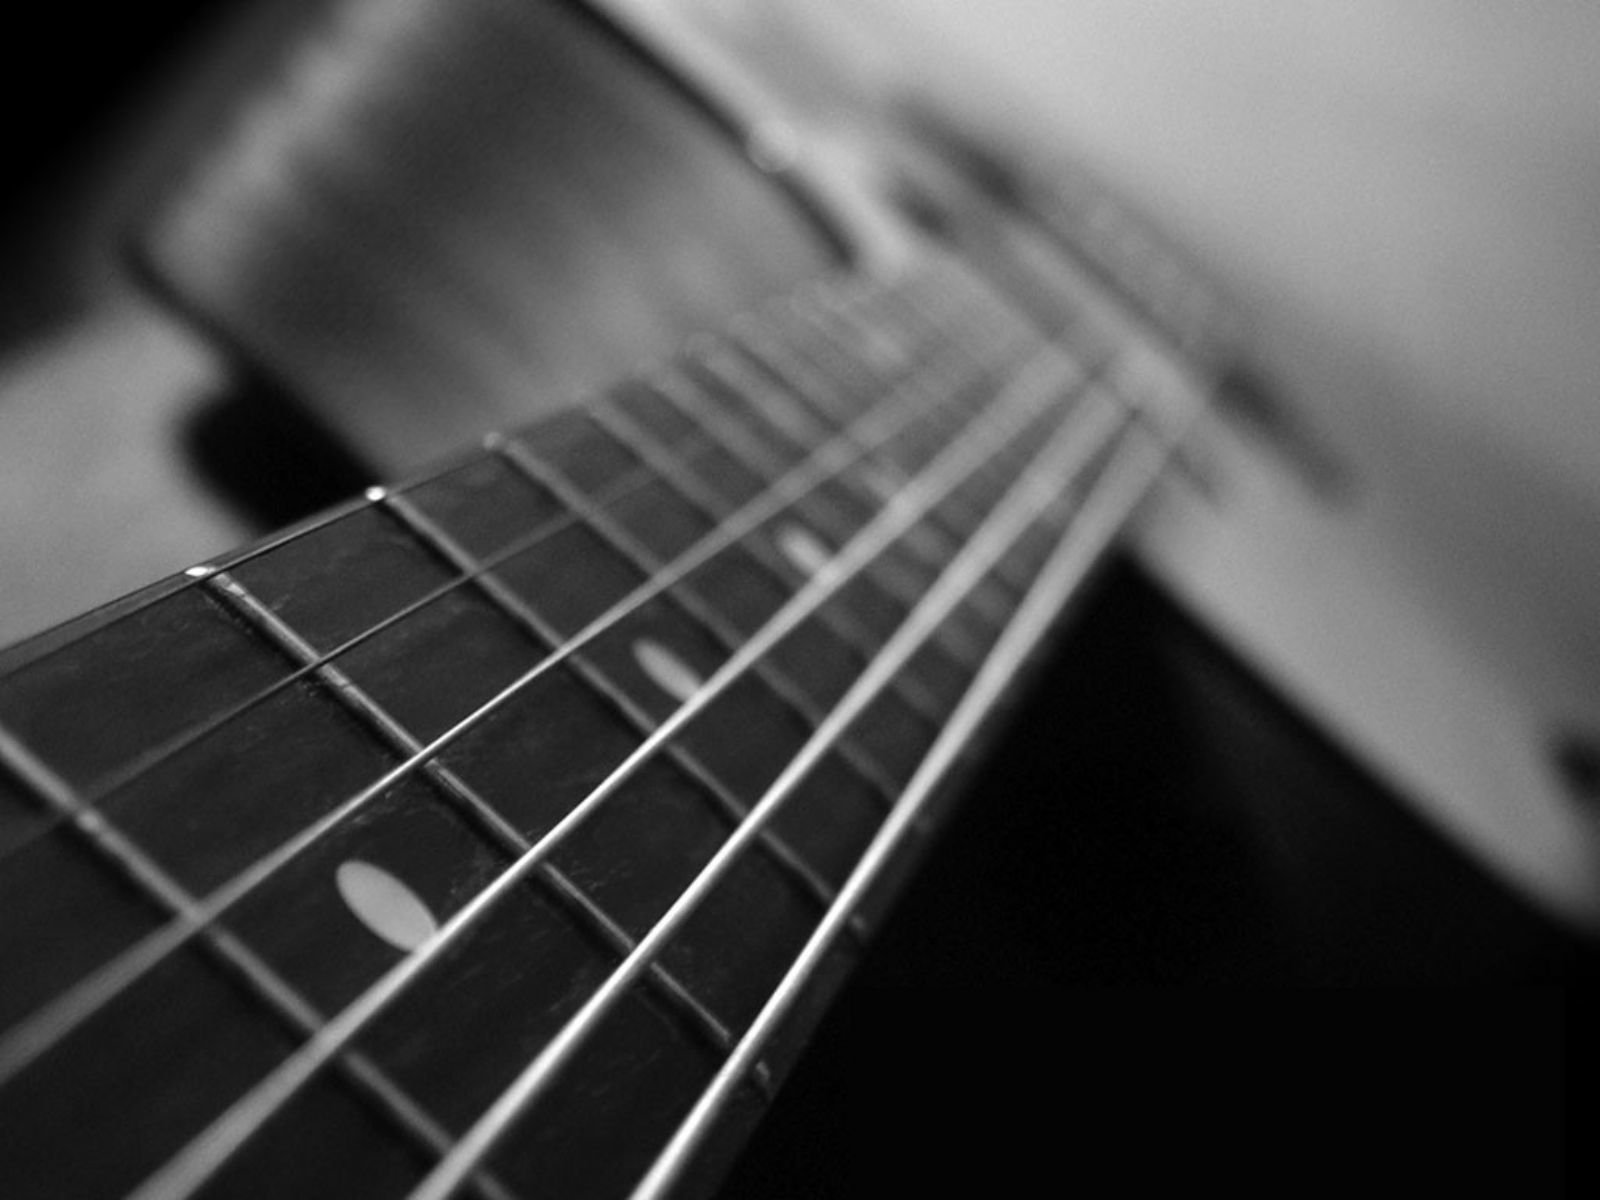 673 Guitar Hd Wallpapers Background Images Wallpaper